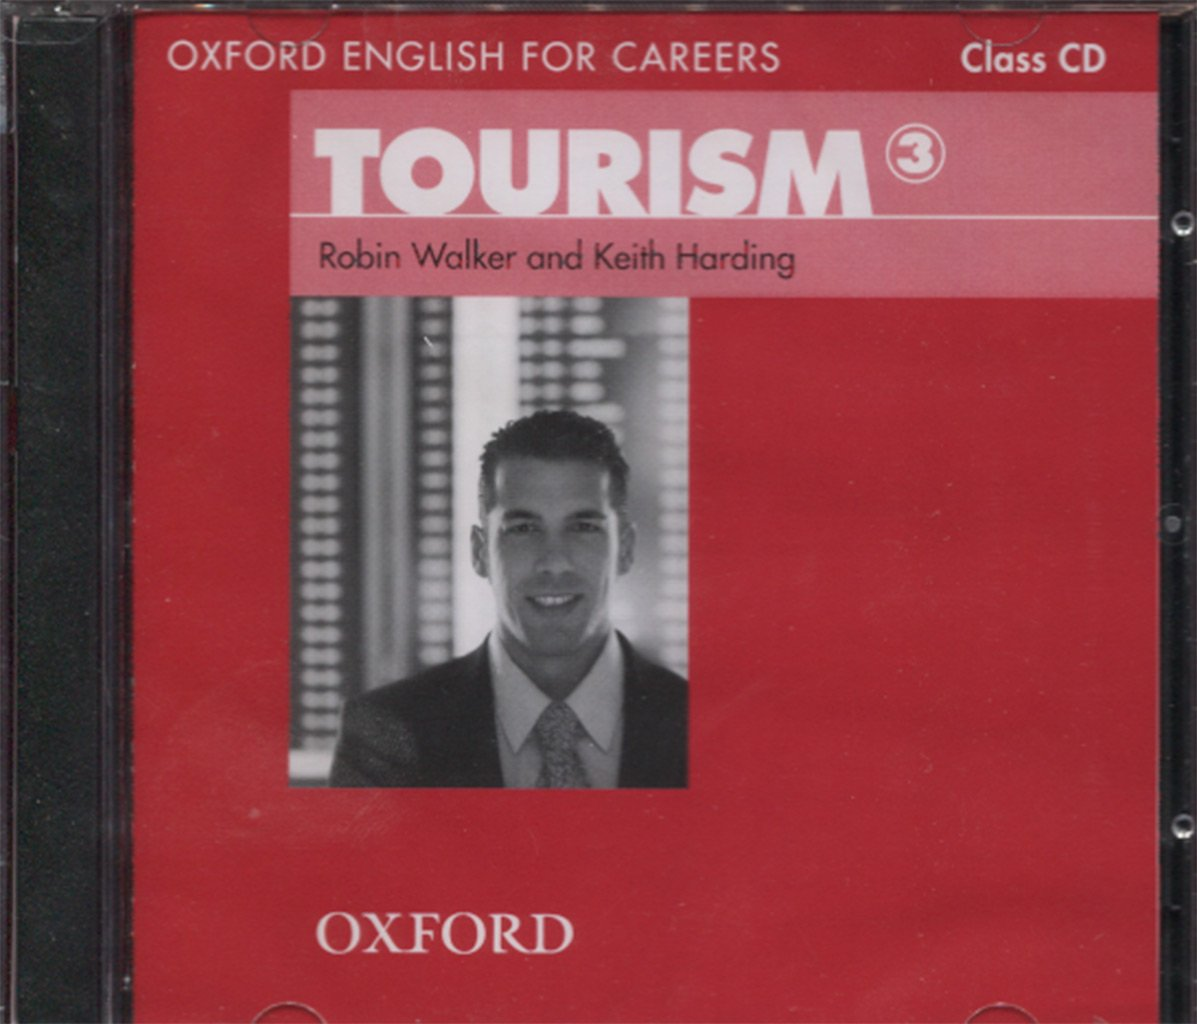 Oxford English For Careers   Tourism Level 3 1 Class Audio CD